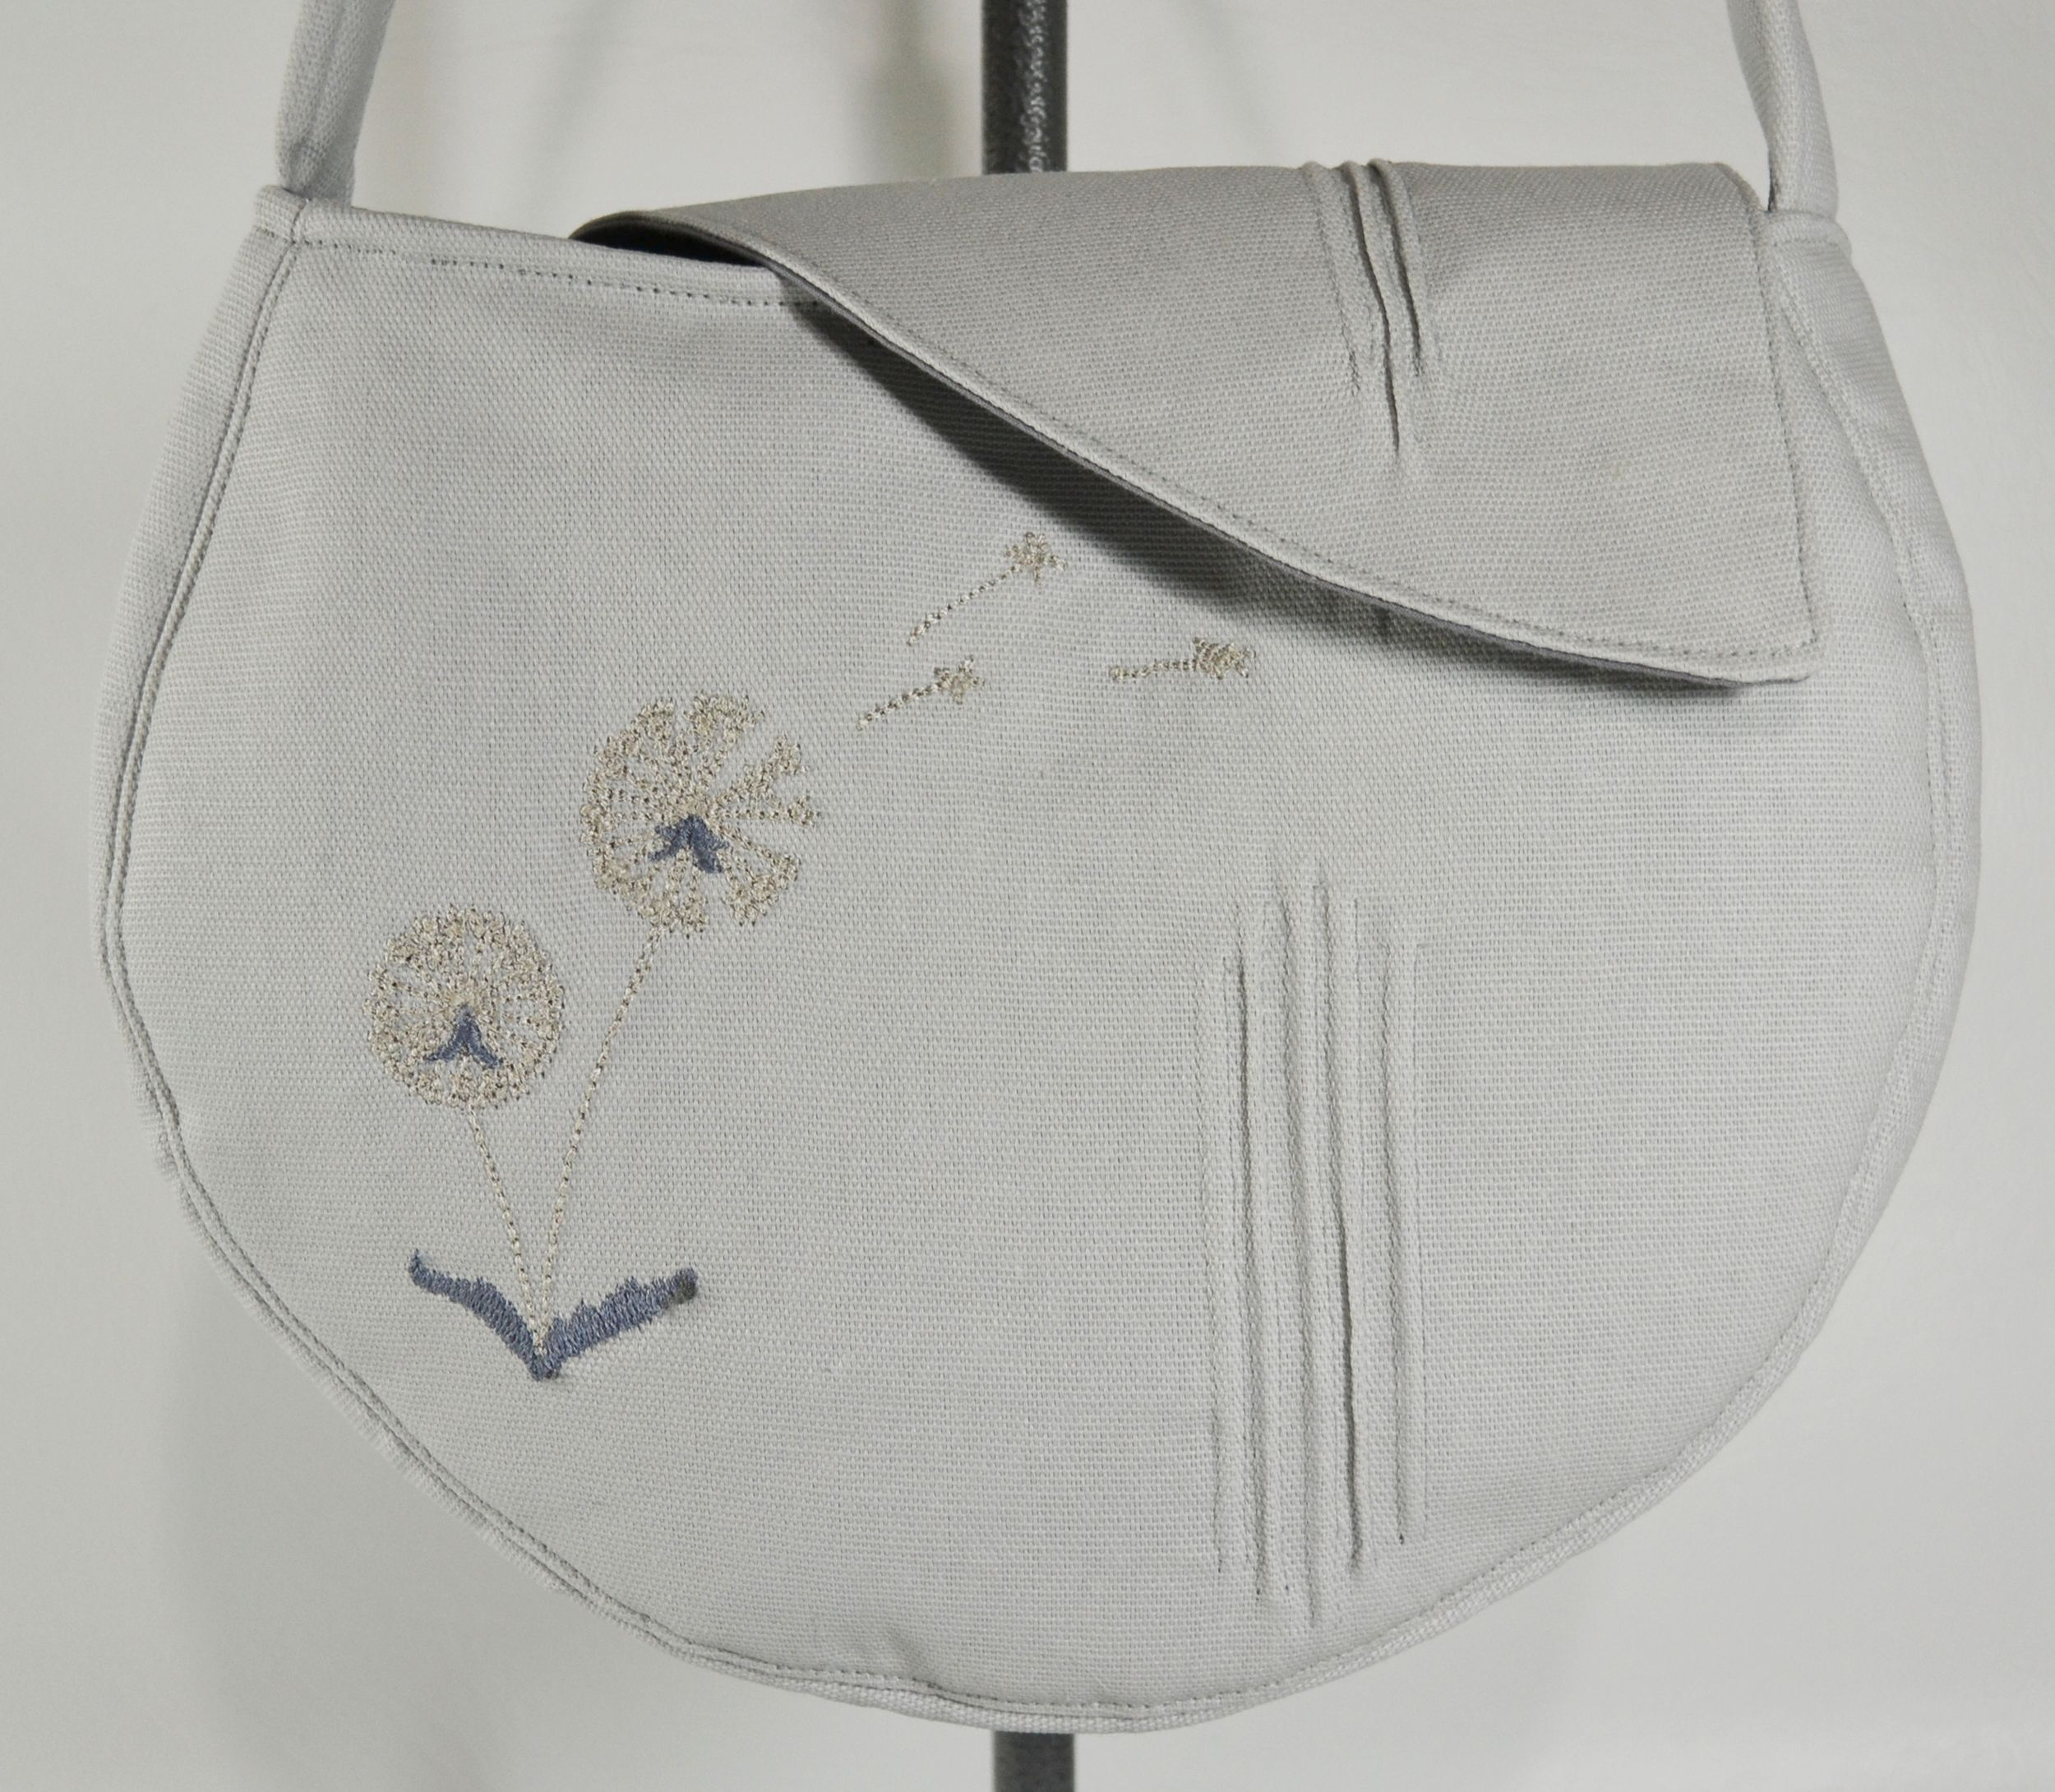 Emma Purse in Stainless Dandelion features an embroidered dandelion and heirloom pin-tucks.